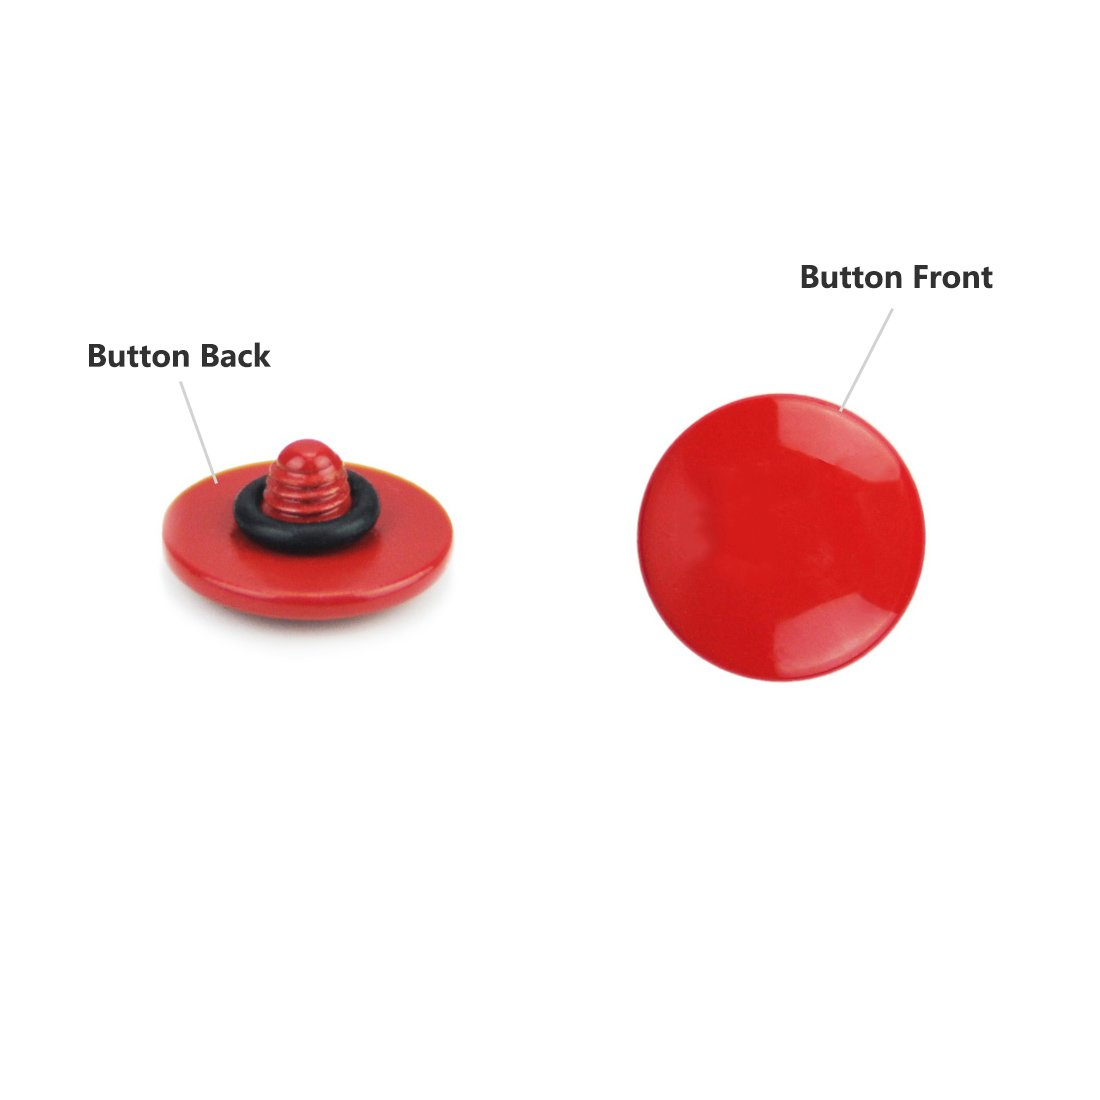 X30 X20 X-E1 X10 X-E2,X-E2S X-T10 X100 X100T X100S STX-2 XPRO-1,X100F LXH 2 PACK Orange Convex Metal Soft Release Button Finger Touch Fits any Standard Threaed Release For Fujifilm X-PRO2